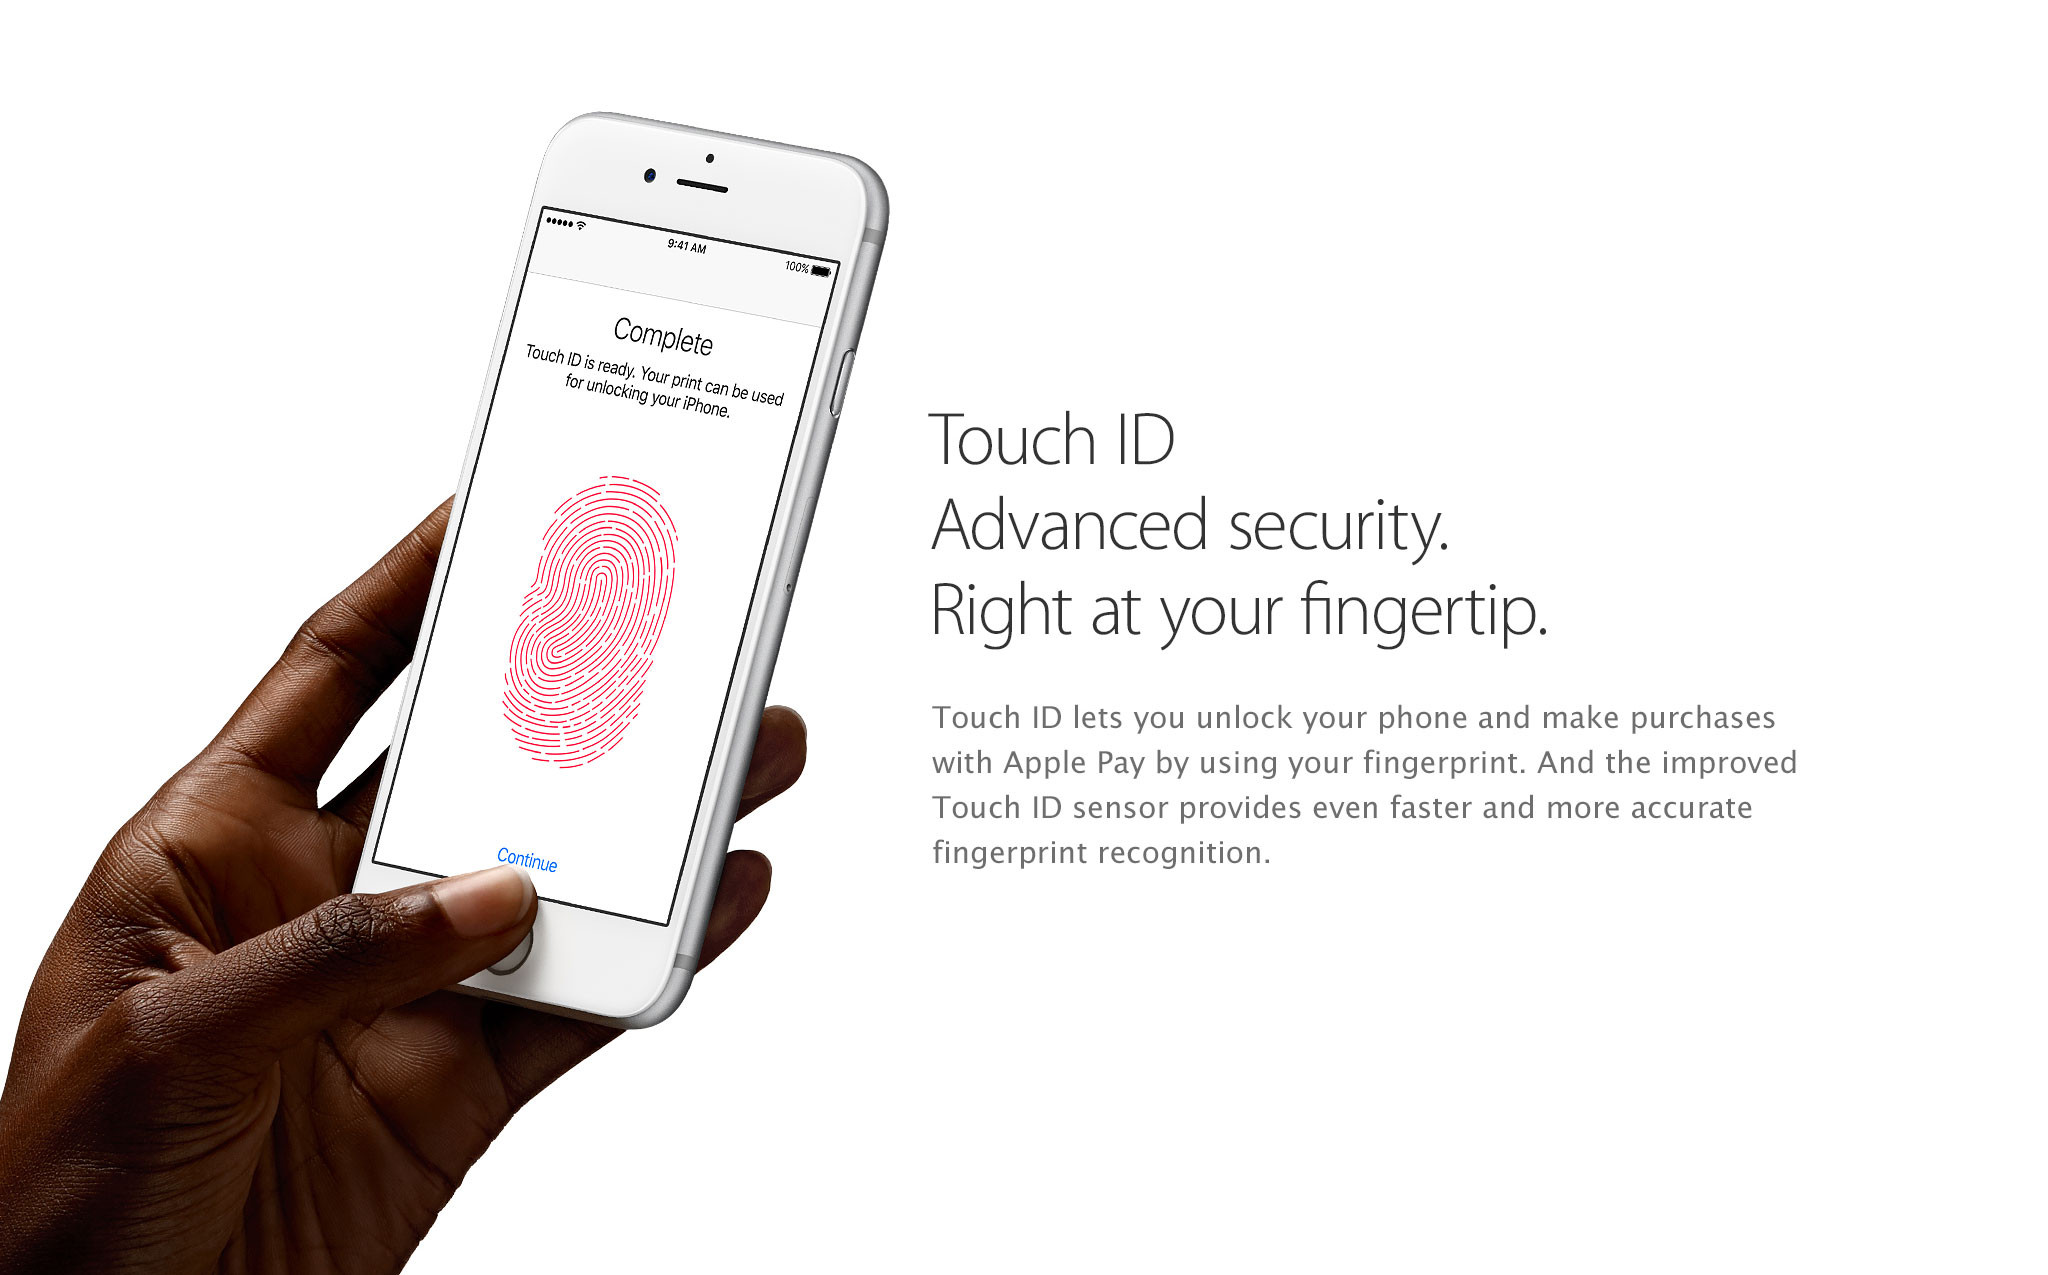 Touch ID Advanced security. Right at your fingertip. Touch ID lets you unlock your phone and make purchases with Apple Pay by using your fingerprint. And the improved Touch ID sensor provides even faster and more accurate fingerprint recognition.